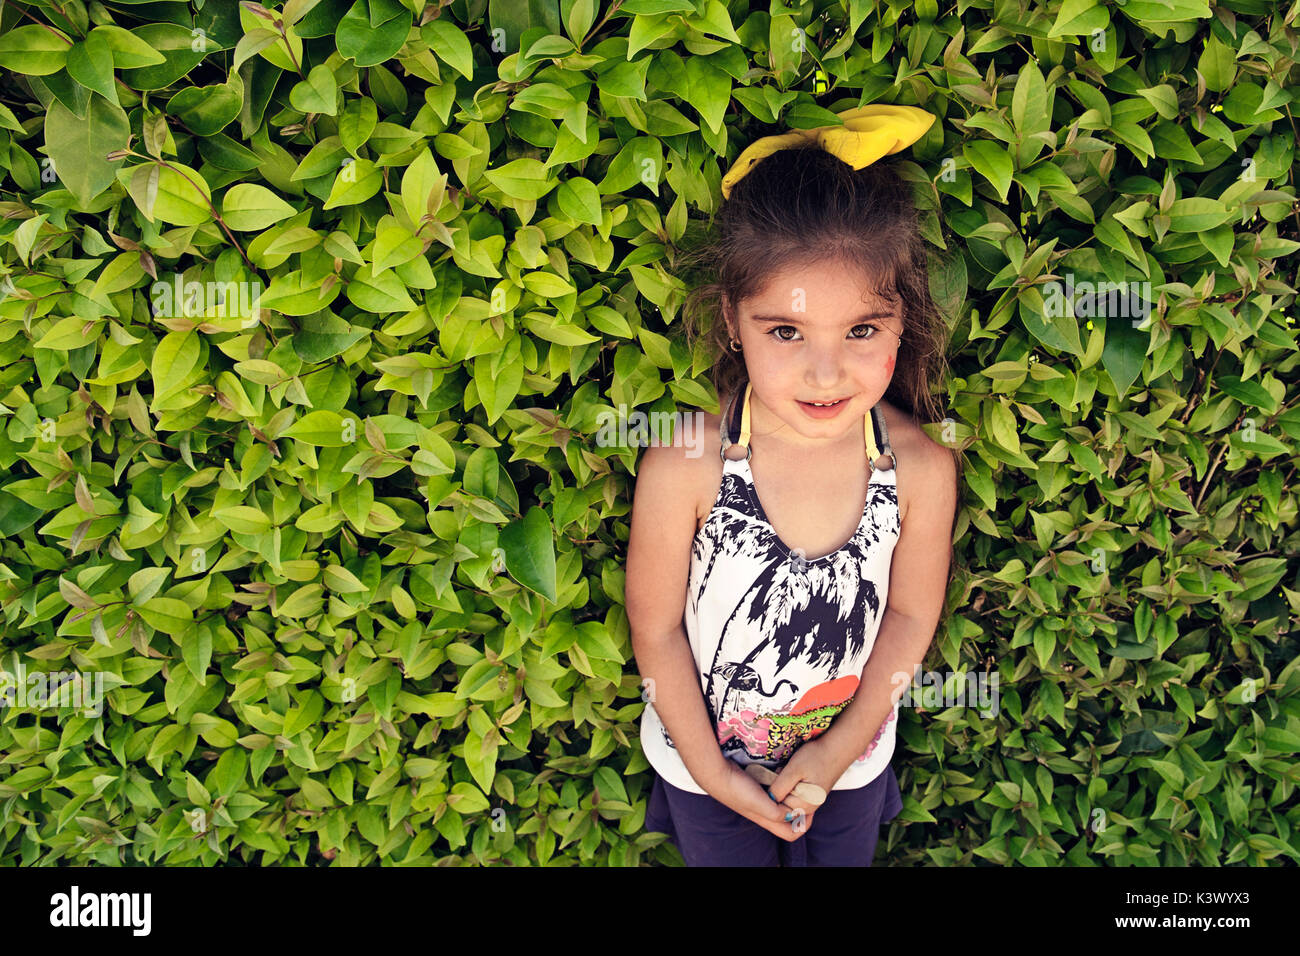 Little girl with green leaves - Stock Image